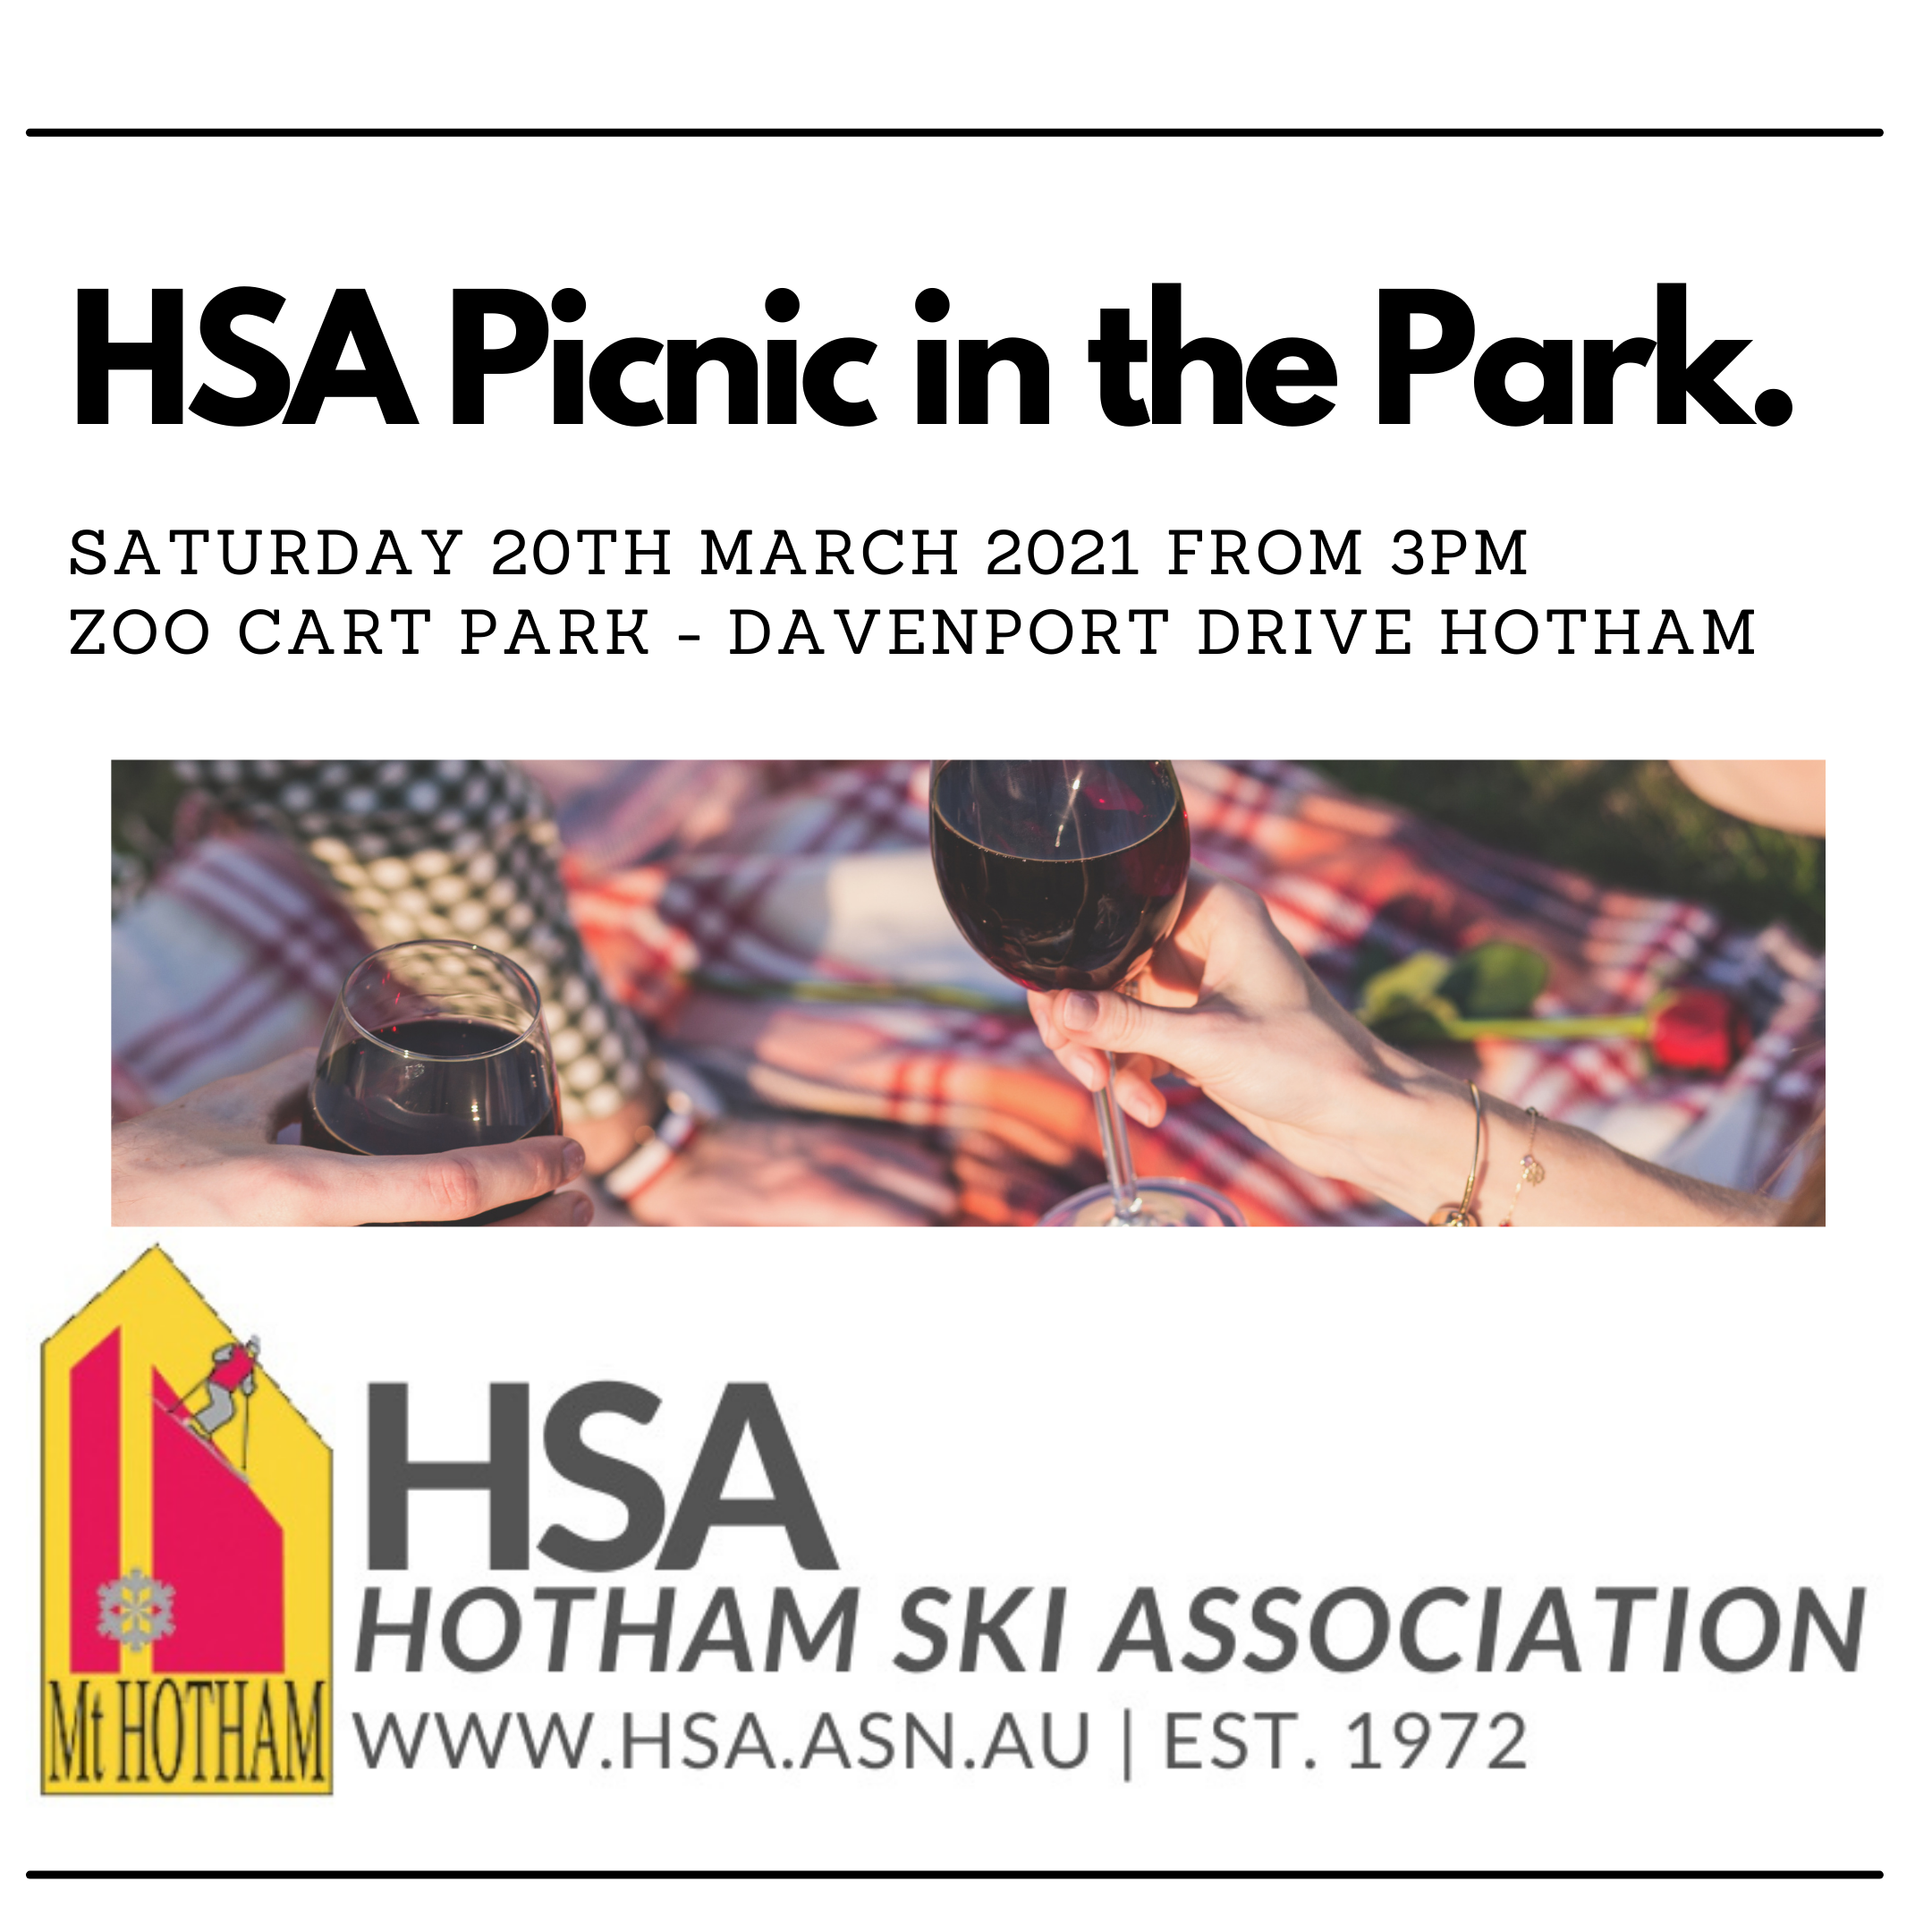 Picnic in the Park HSA Event March 2021